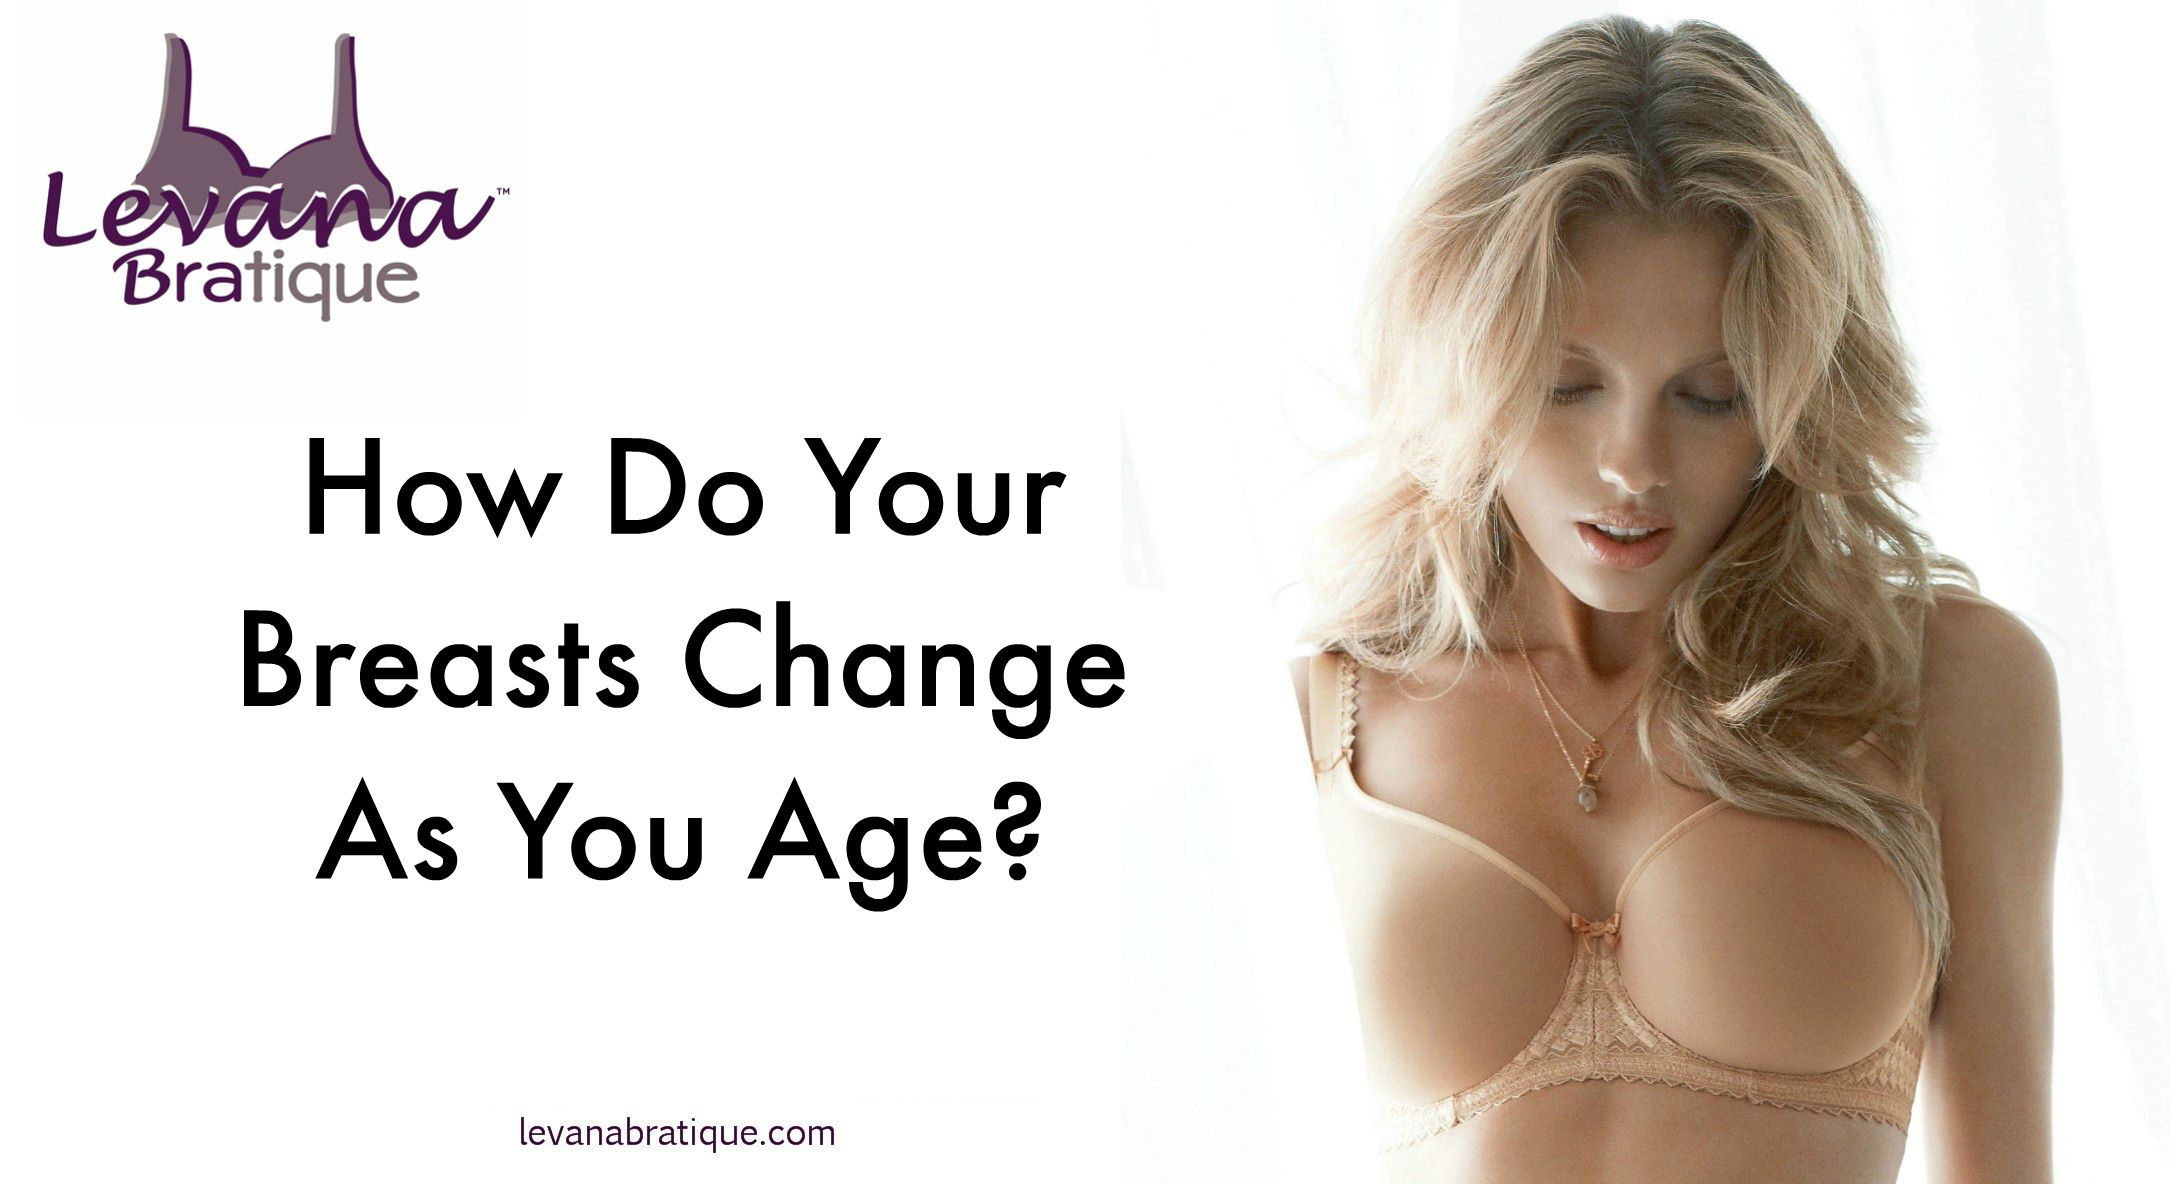 801b311ef0 How Do Your Breasts Change with Age     Women s Health magazine published a  pretty neat discussion of the ways our breasts change in our 20s